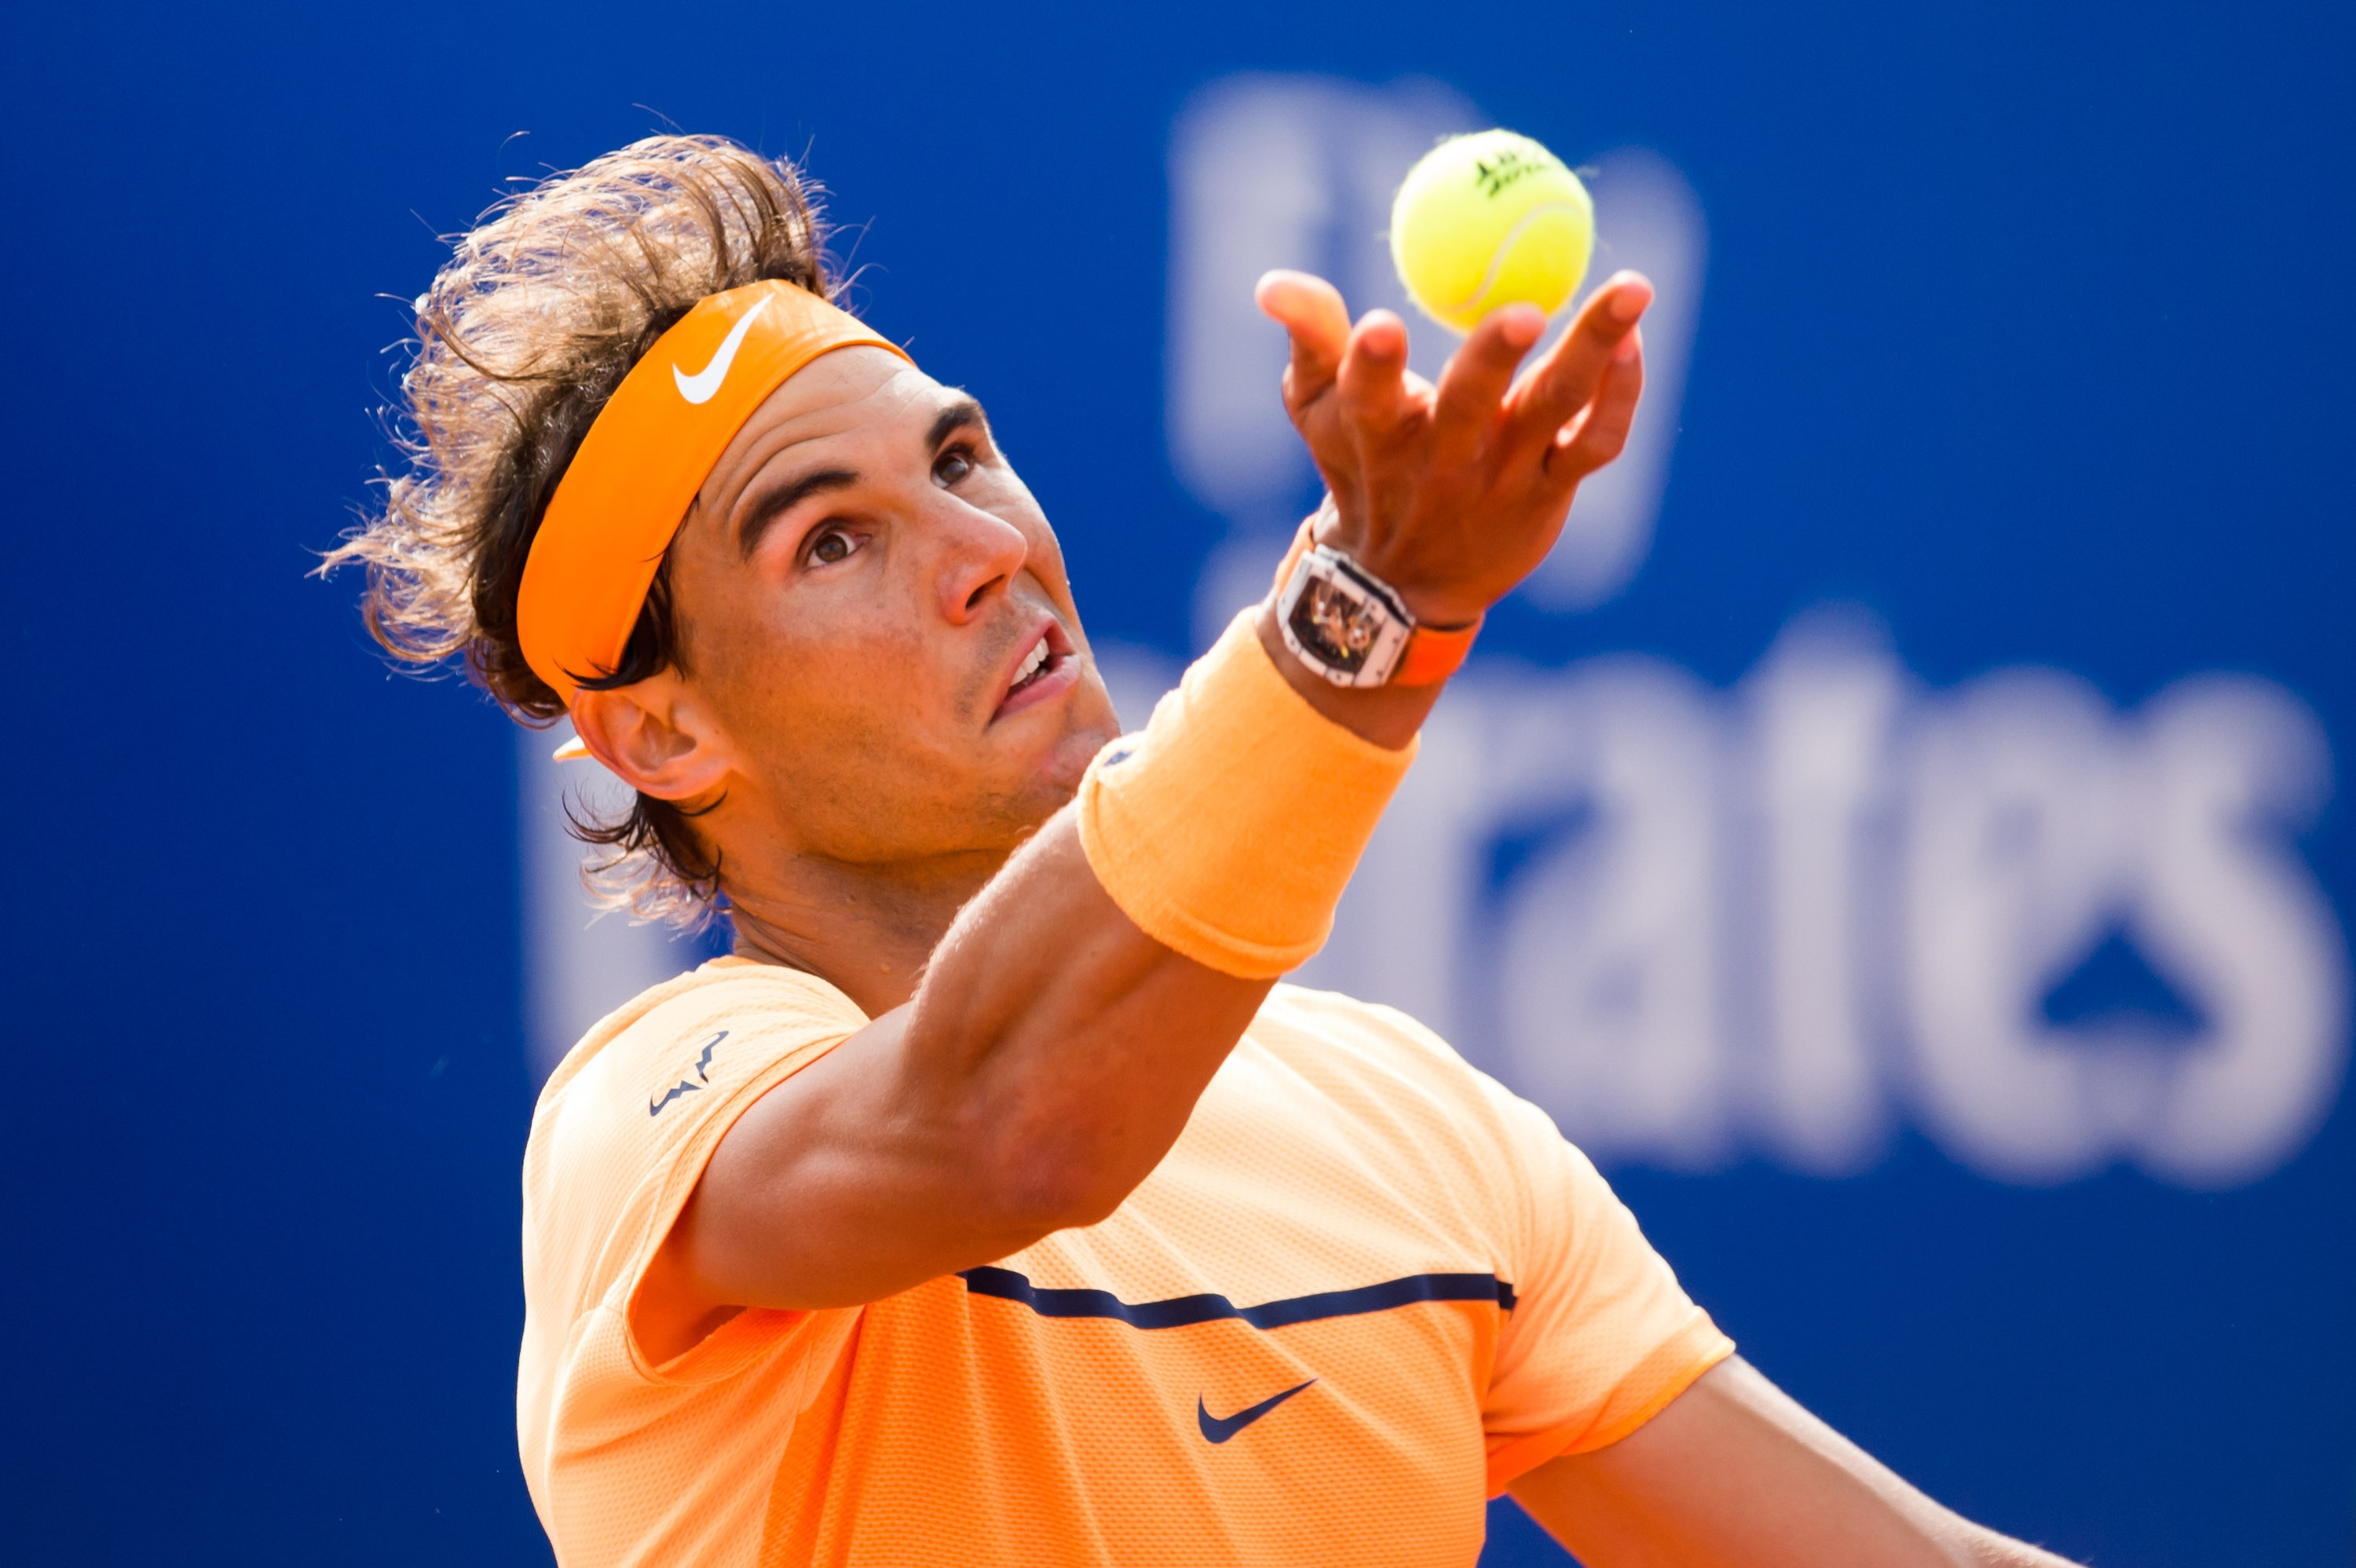 Barcelona Open R3 What Time Does Rafael Nadal Play